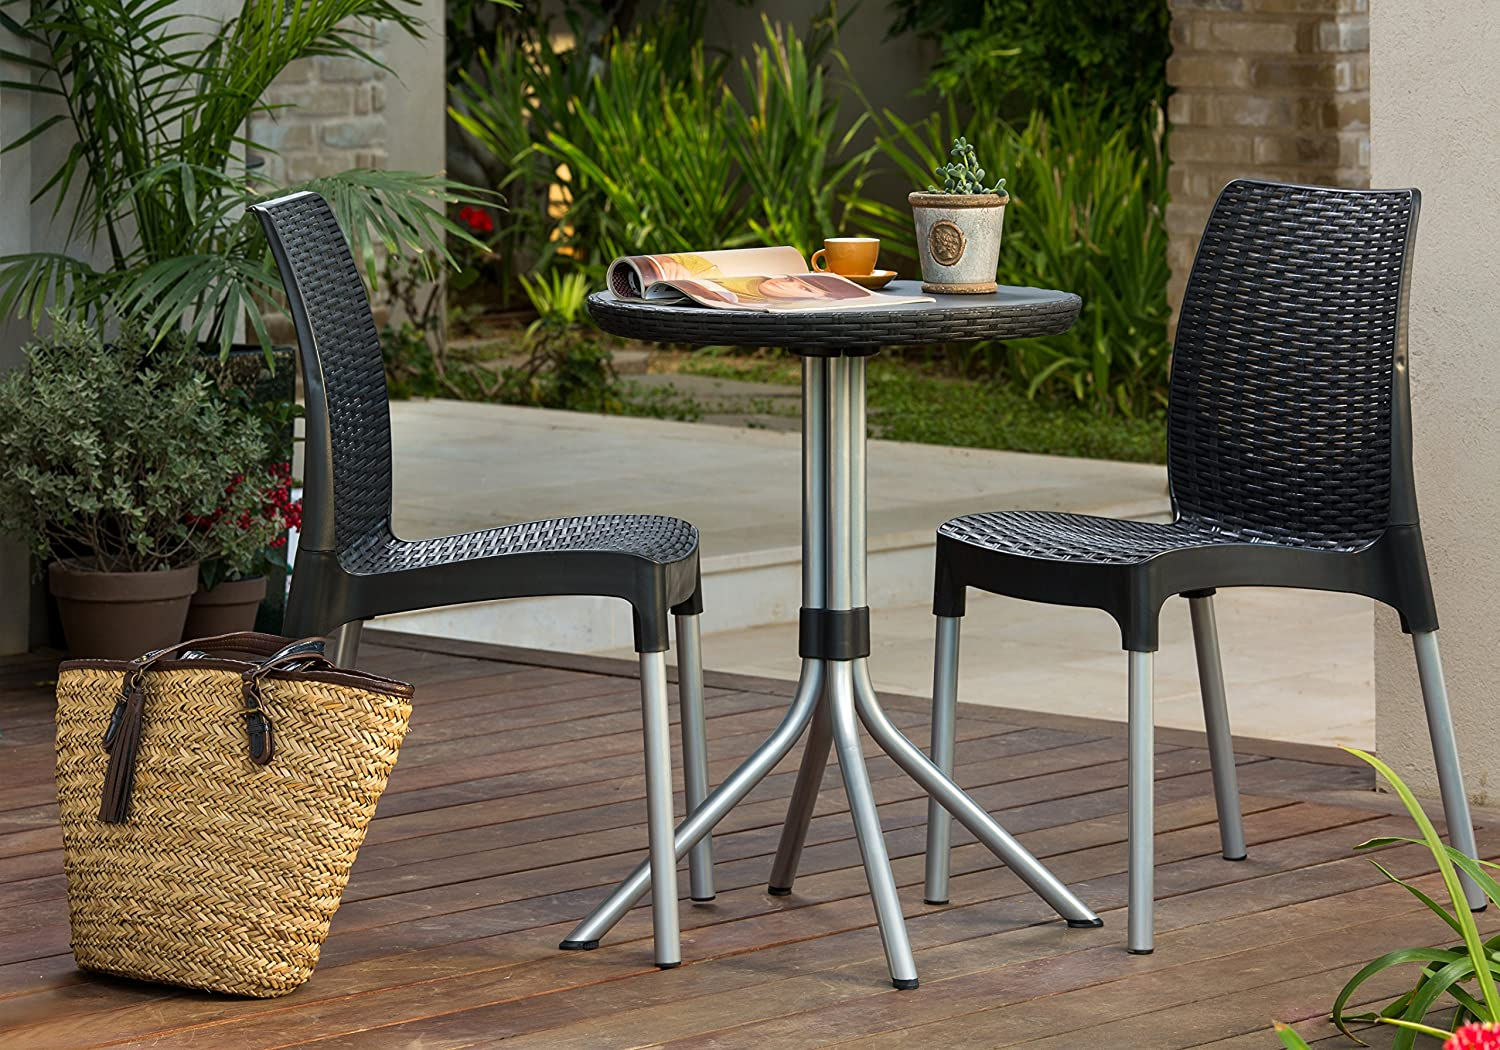 amazoncom keter chelsea 3 piece resin outdoor patio furniture dining bistro set with patio table and chairs charcoal garden outdoor - Garden Furniture 3 Piece